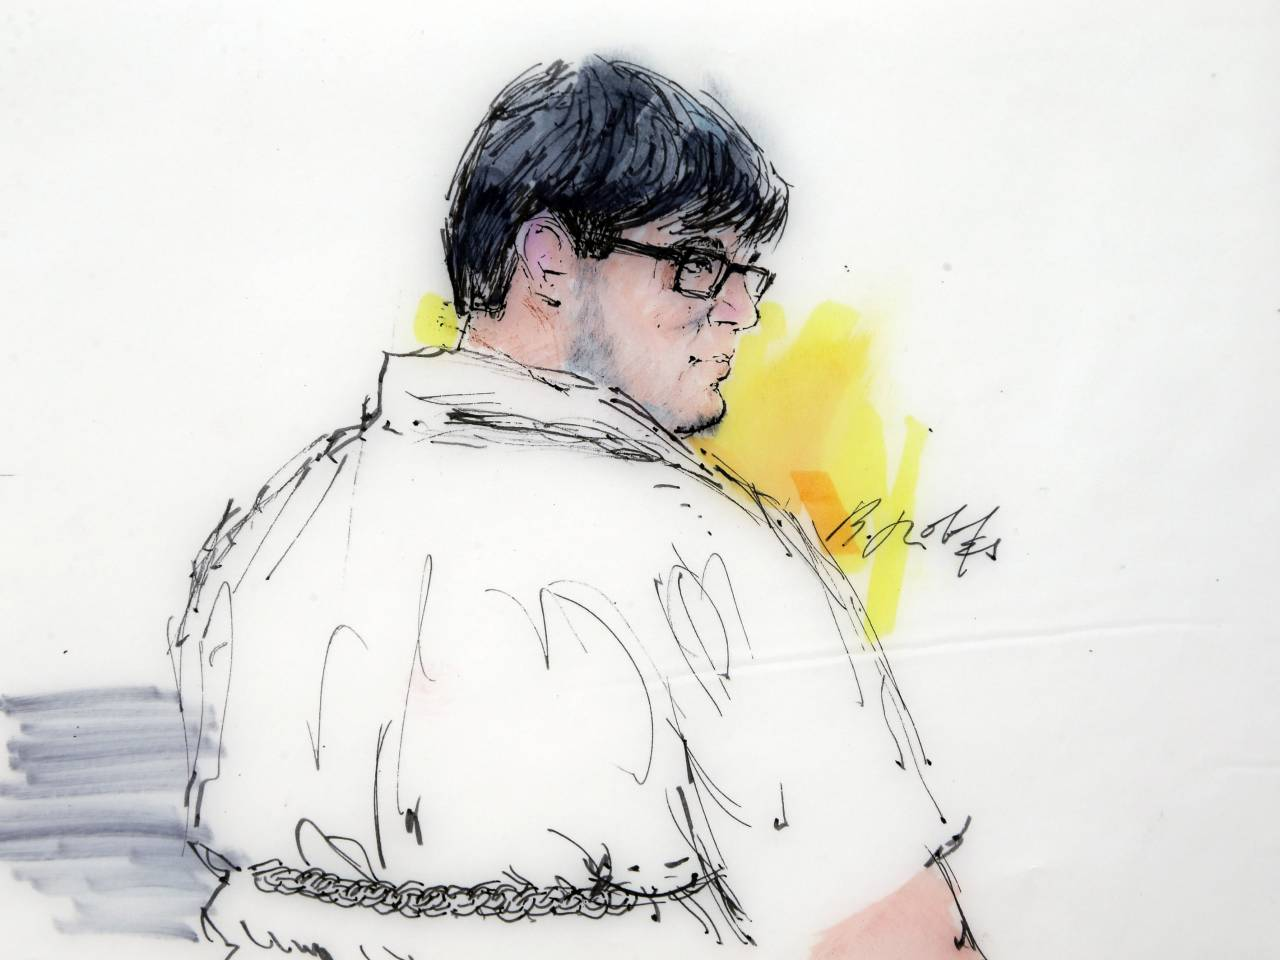 San Bernardino, Calif., attacker's friend enters plea deal